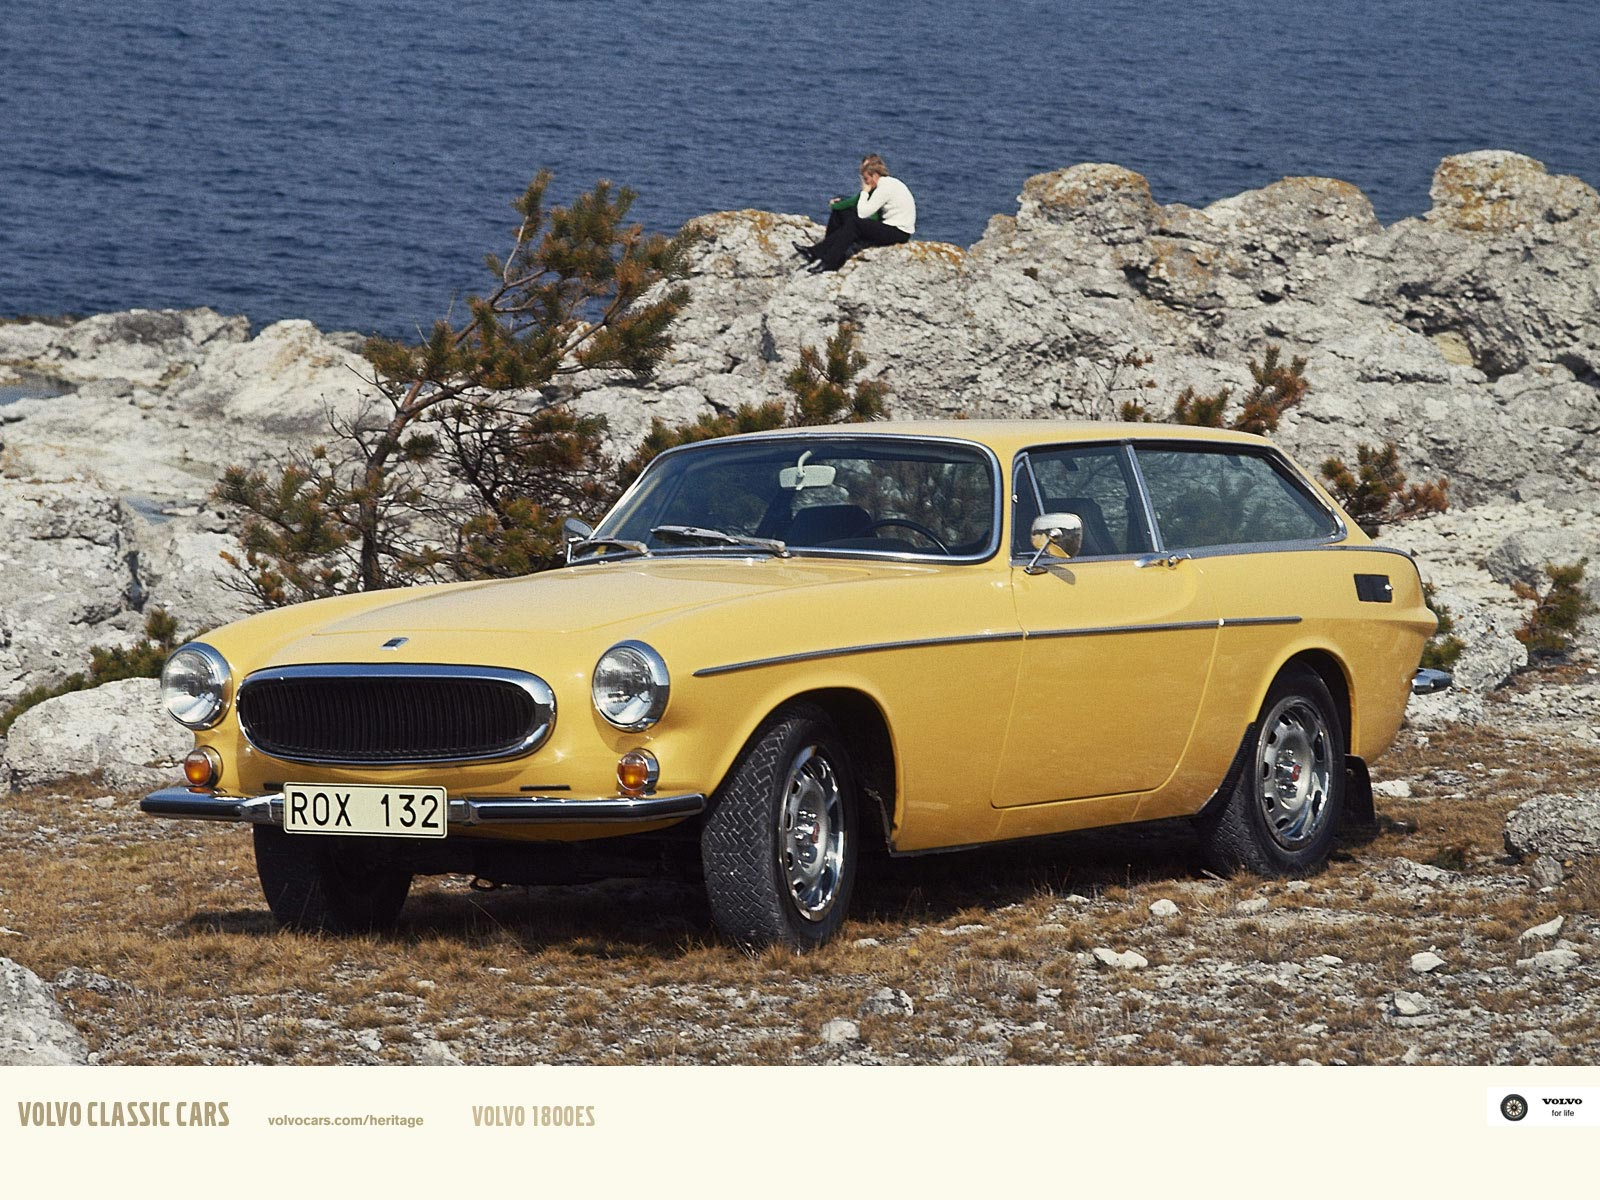 Volvo Images 1800es Hd Wallpaper And Background Photos